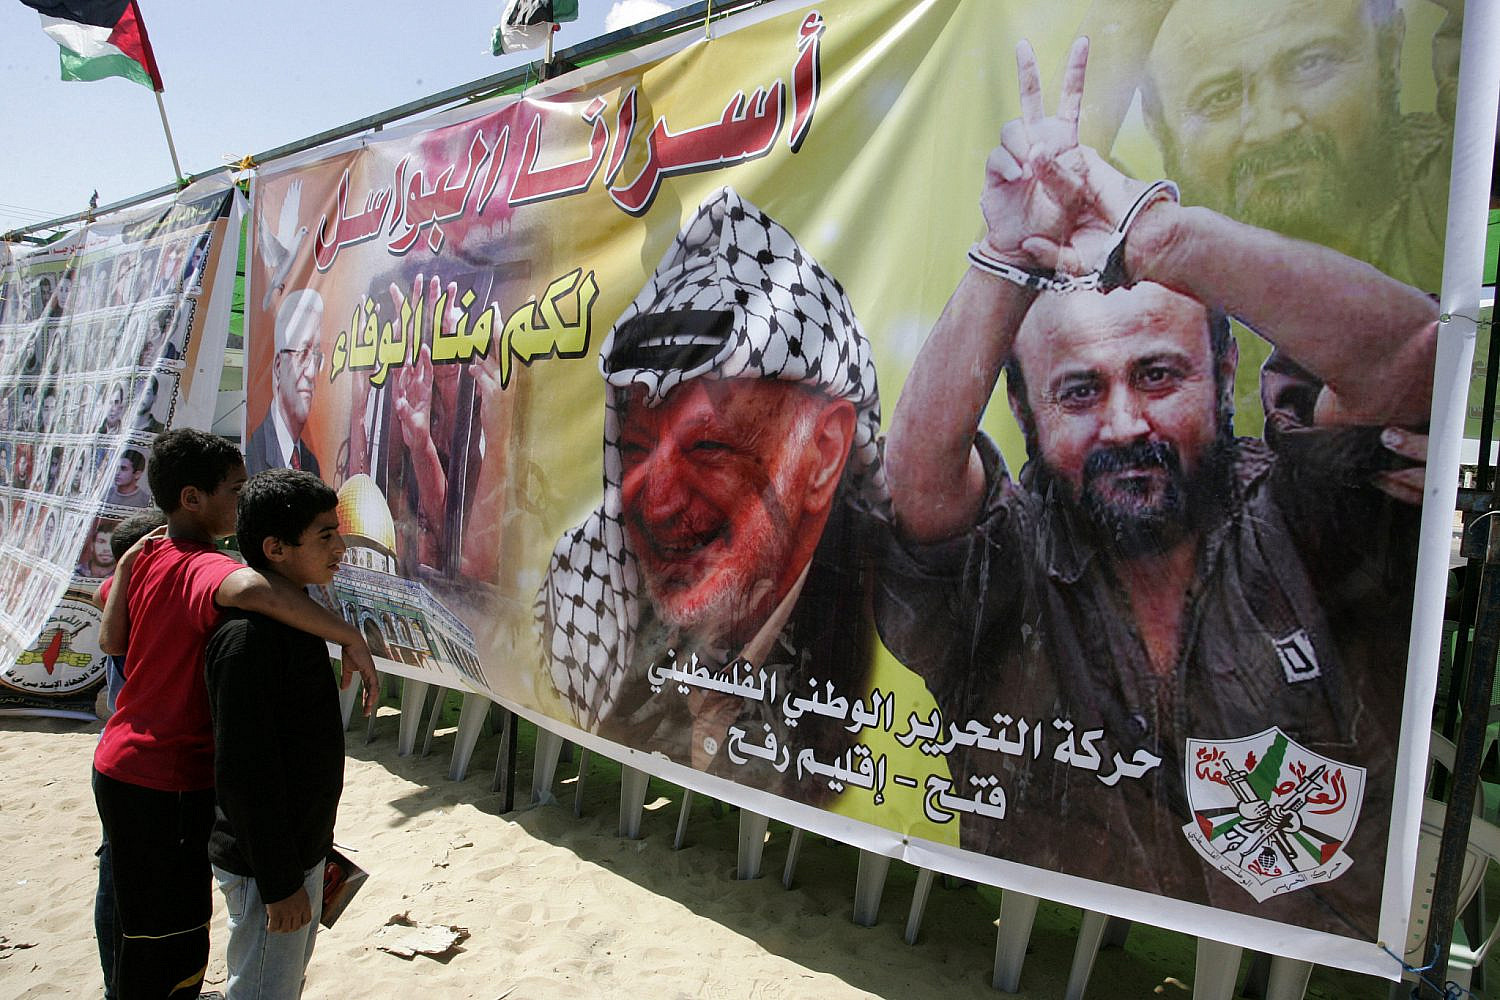 Palestinian children stand next to the image of Fatah leaders Yasser Arafat and Marwan Barghouti during a demonstration in support of prisoners on hunger strike in Israeli jails, in Rafah, Gaza Strip, Oct. 6, 2011. (Abed Rahim Khatib/Flash90)